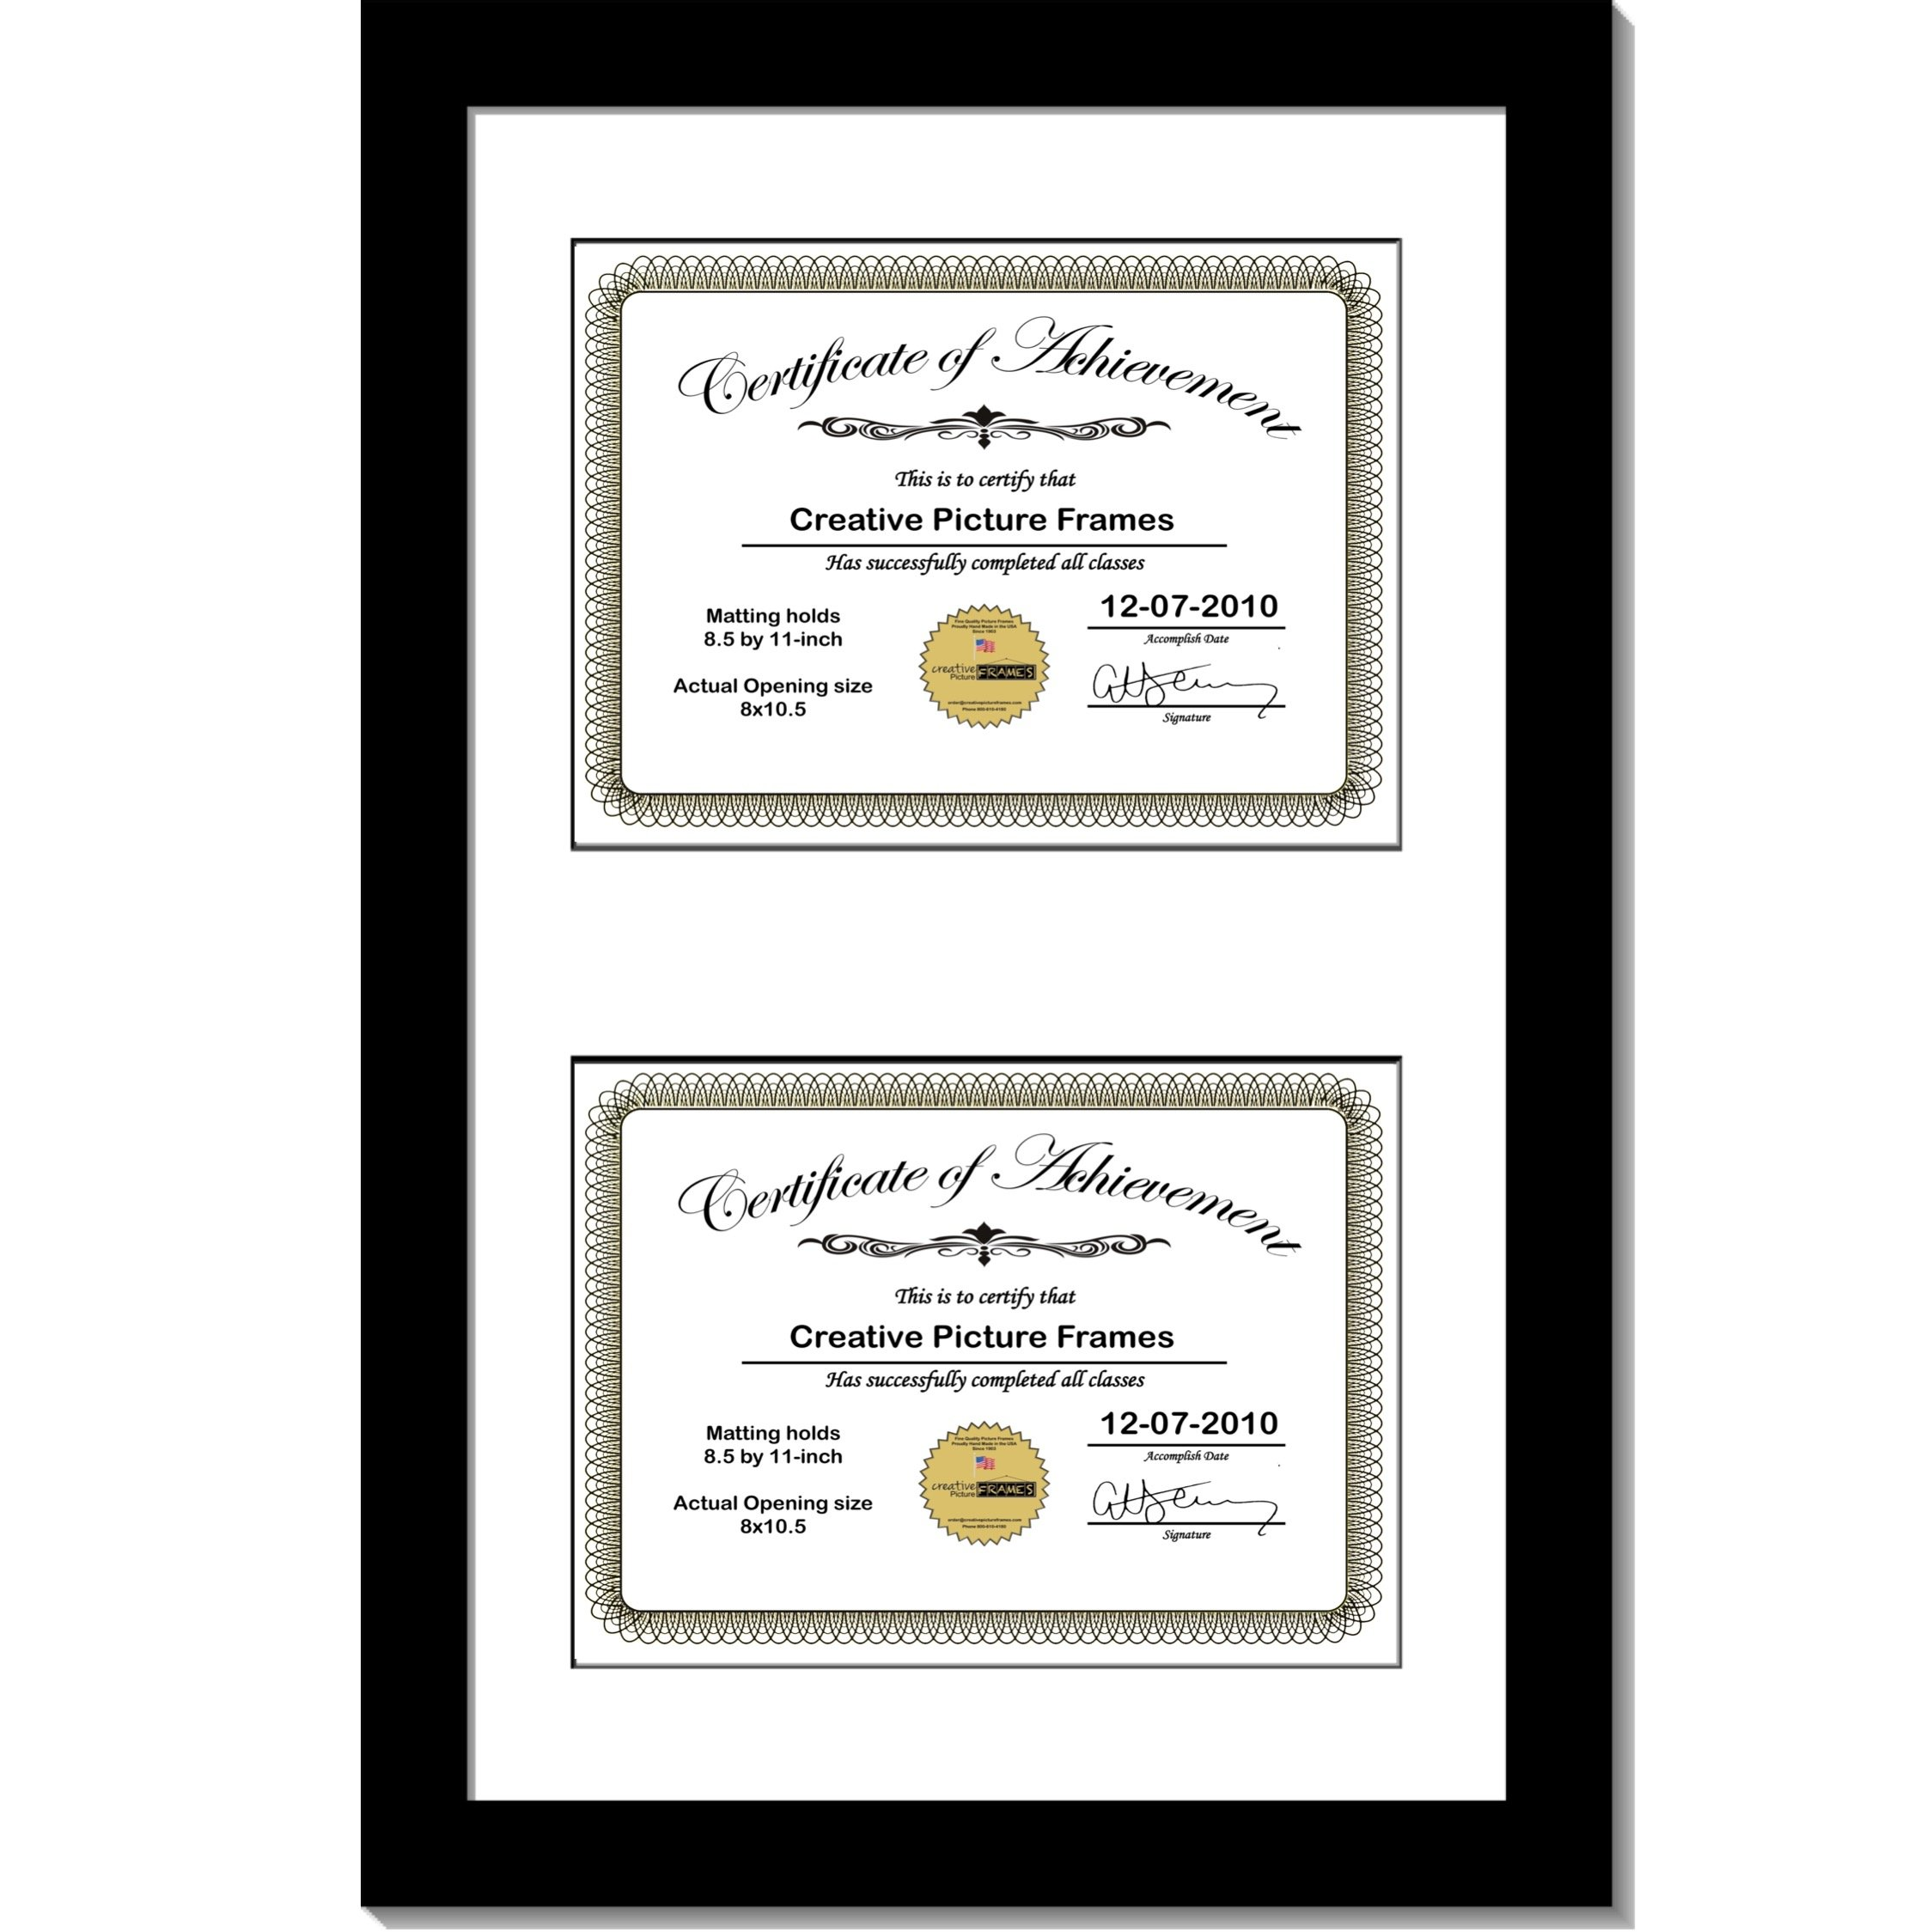 CreativePF [14x20bk-w] Black Vertical Double Diploma Frame with 2 Opening White Mat, Holds 2-8.5x11-inch Documents with Wall Hanger